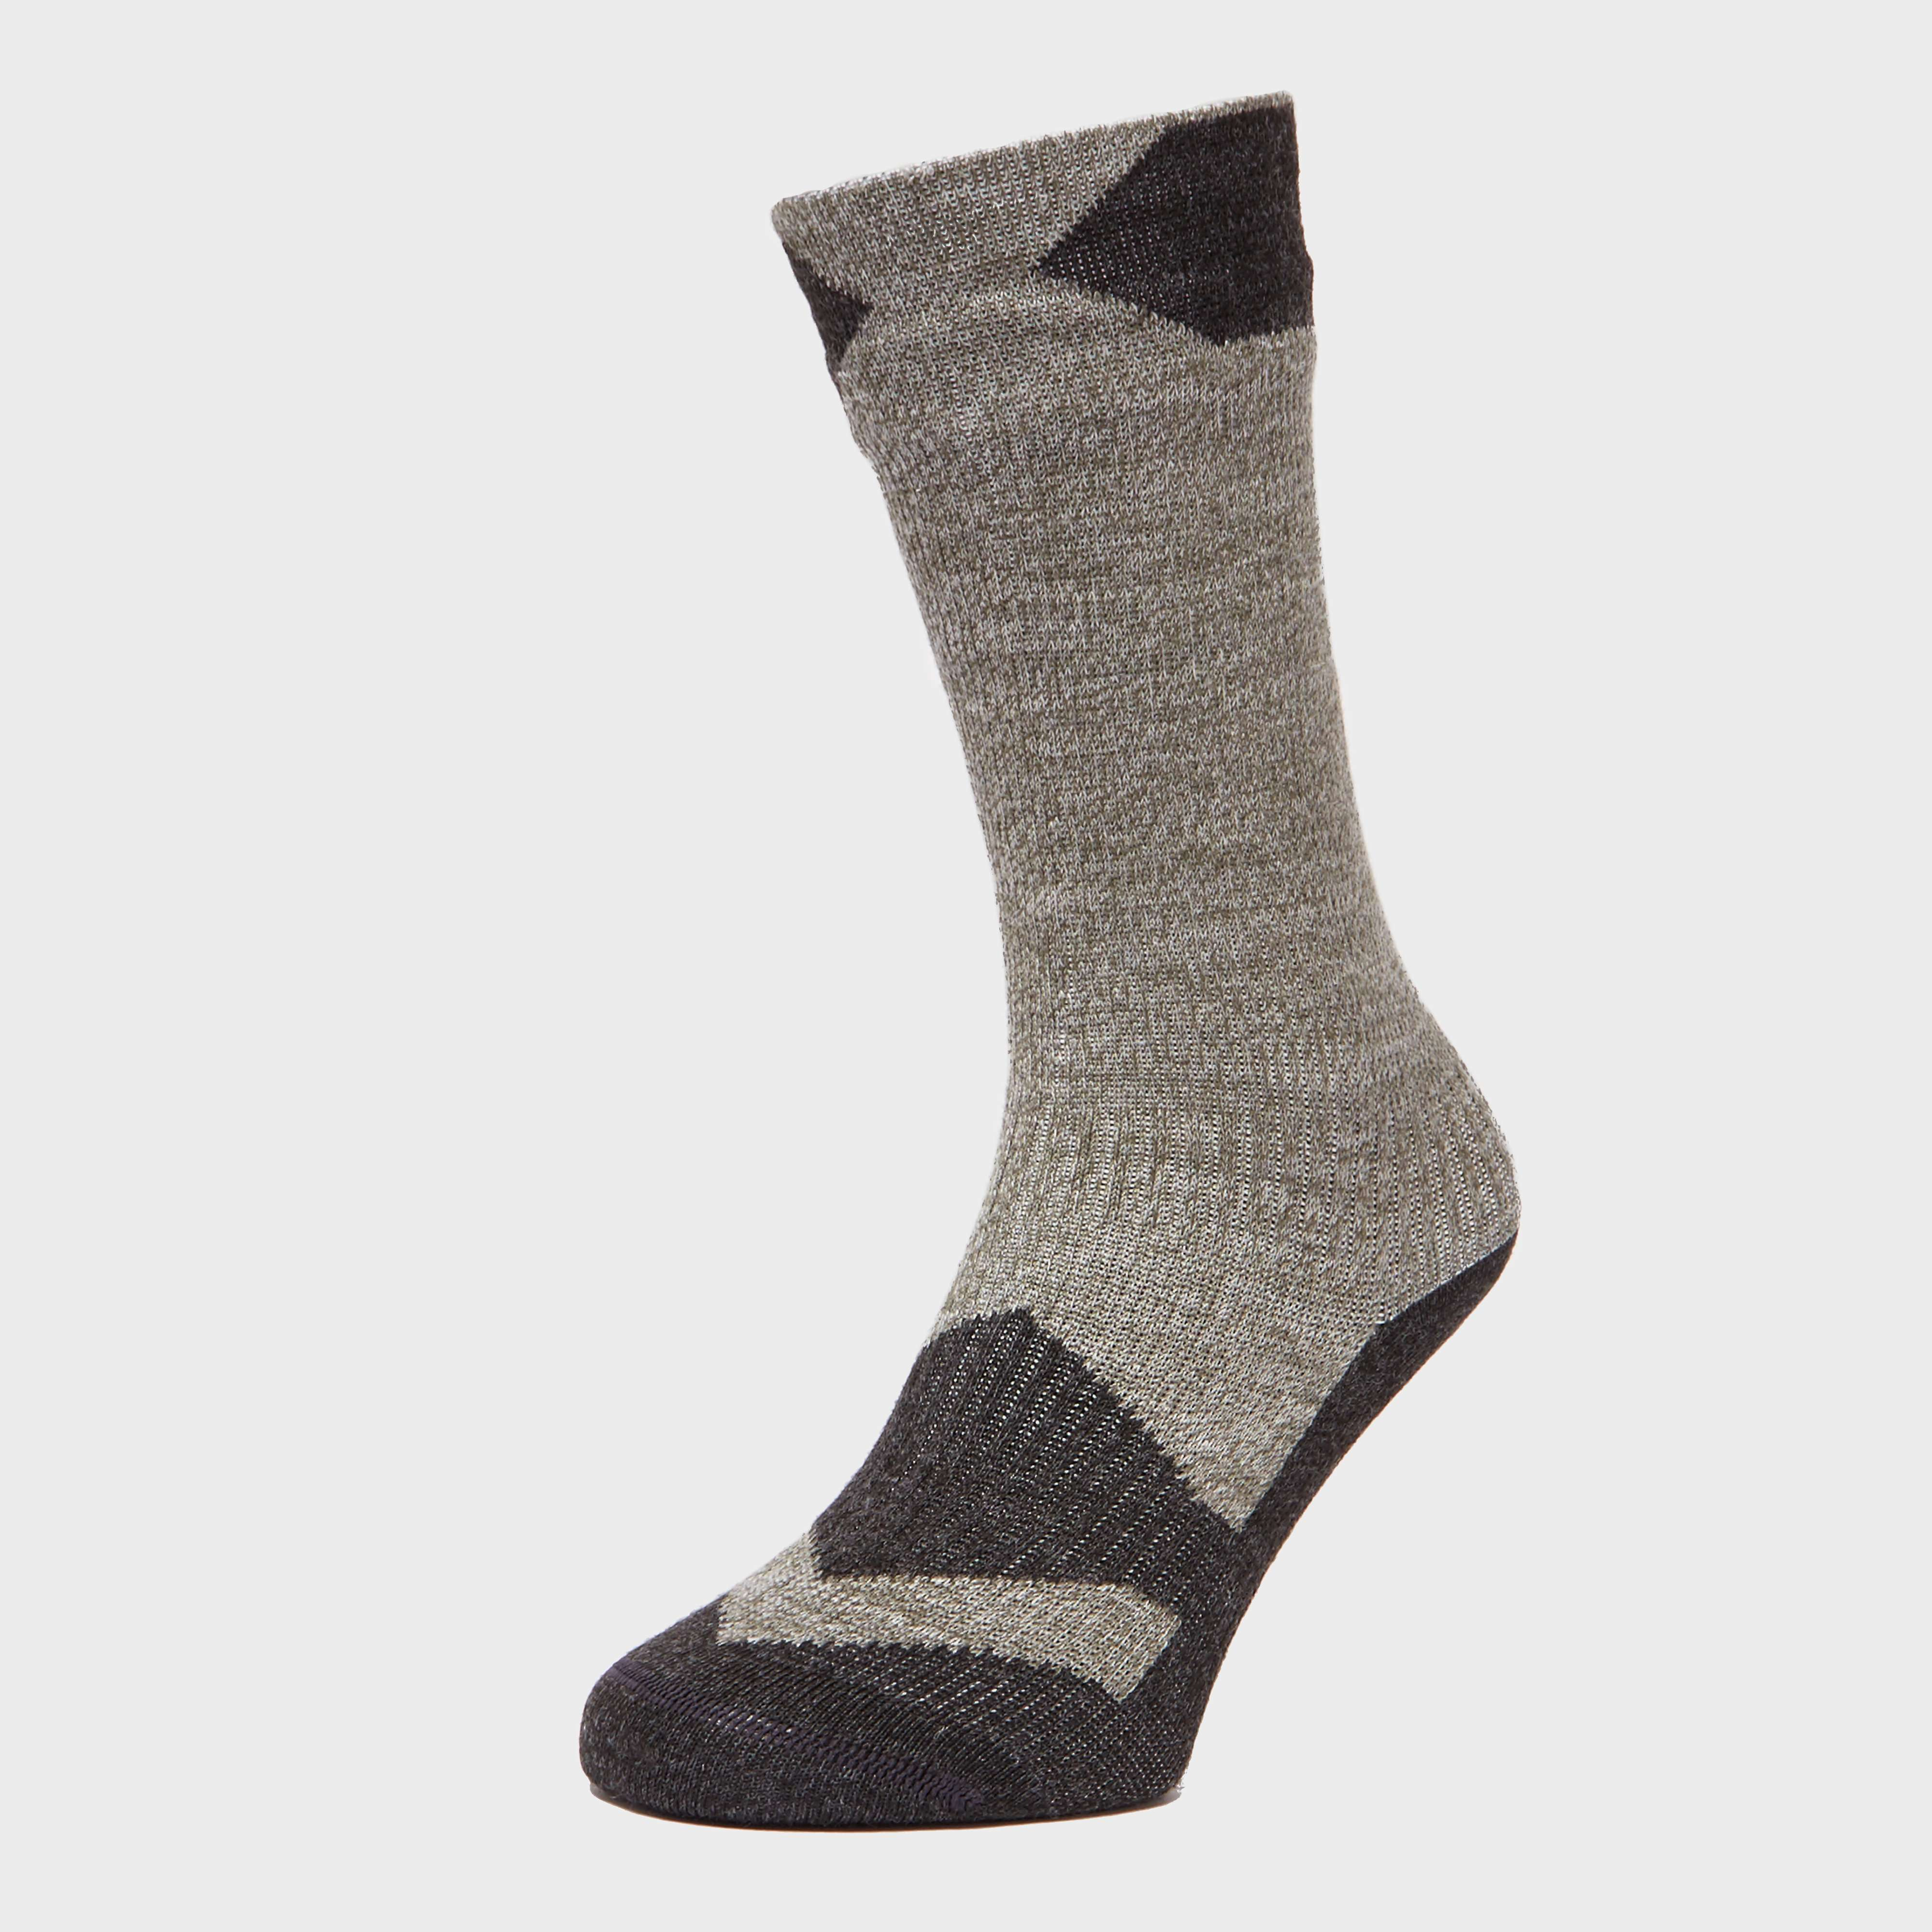 SEALSKINZ Mid Length Walking Socks